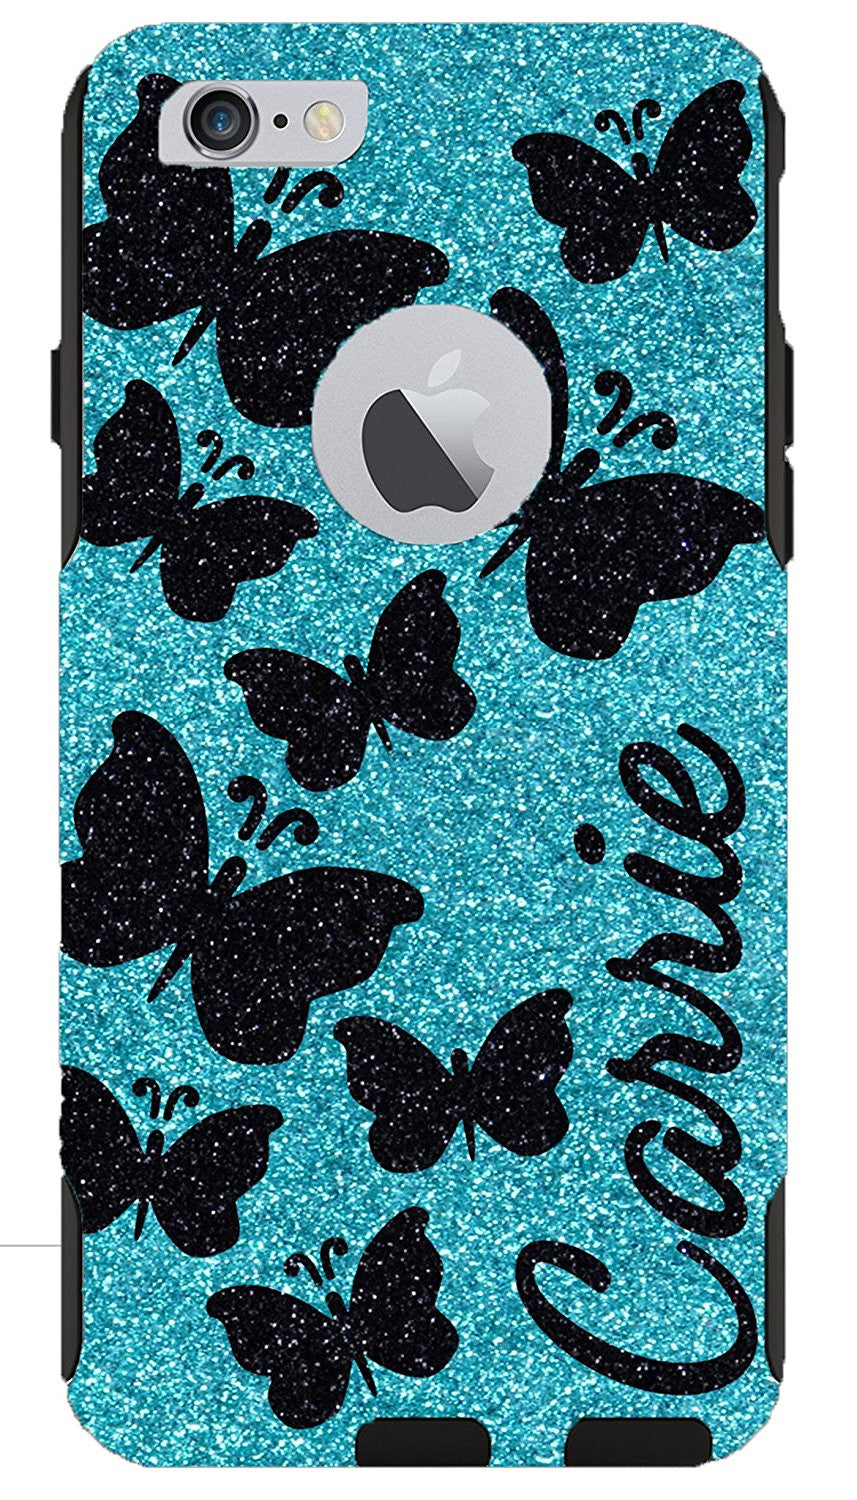 iphone 6 6s case otterbox commuter series custom glitter case for